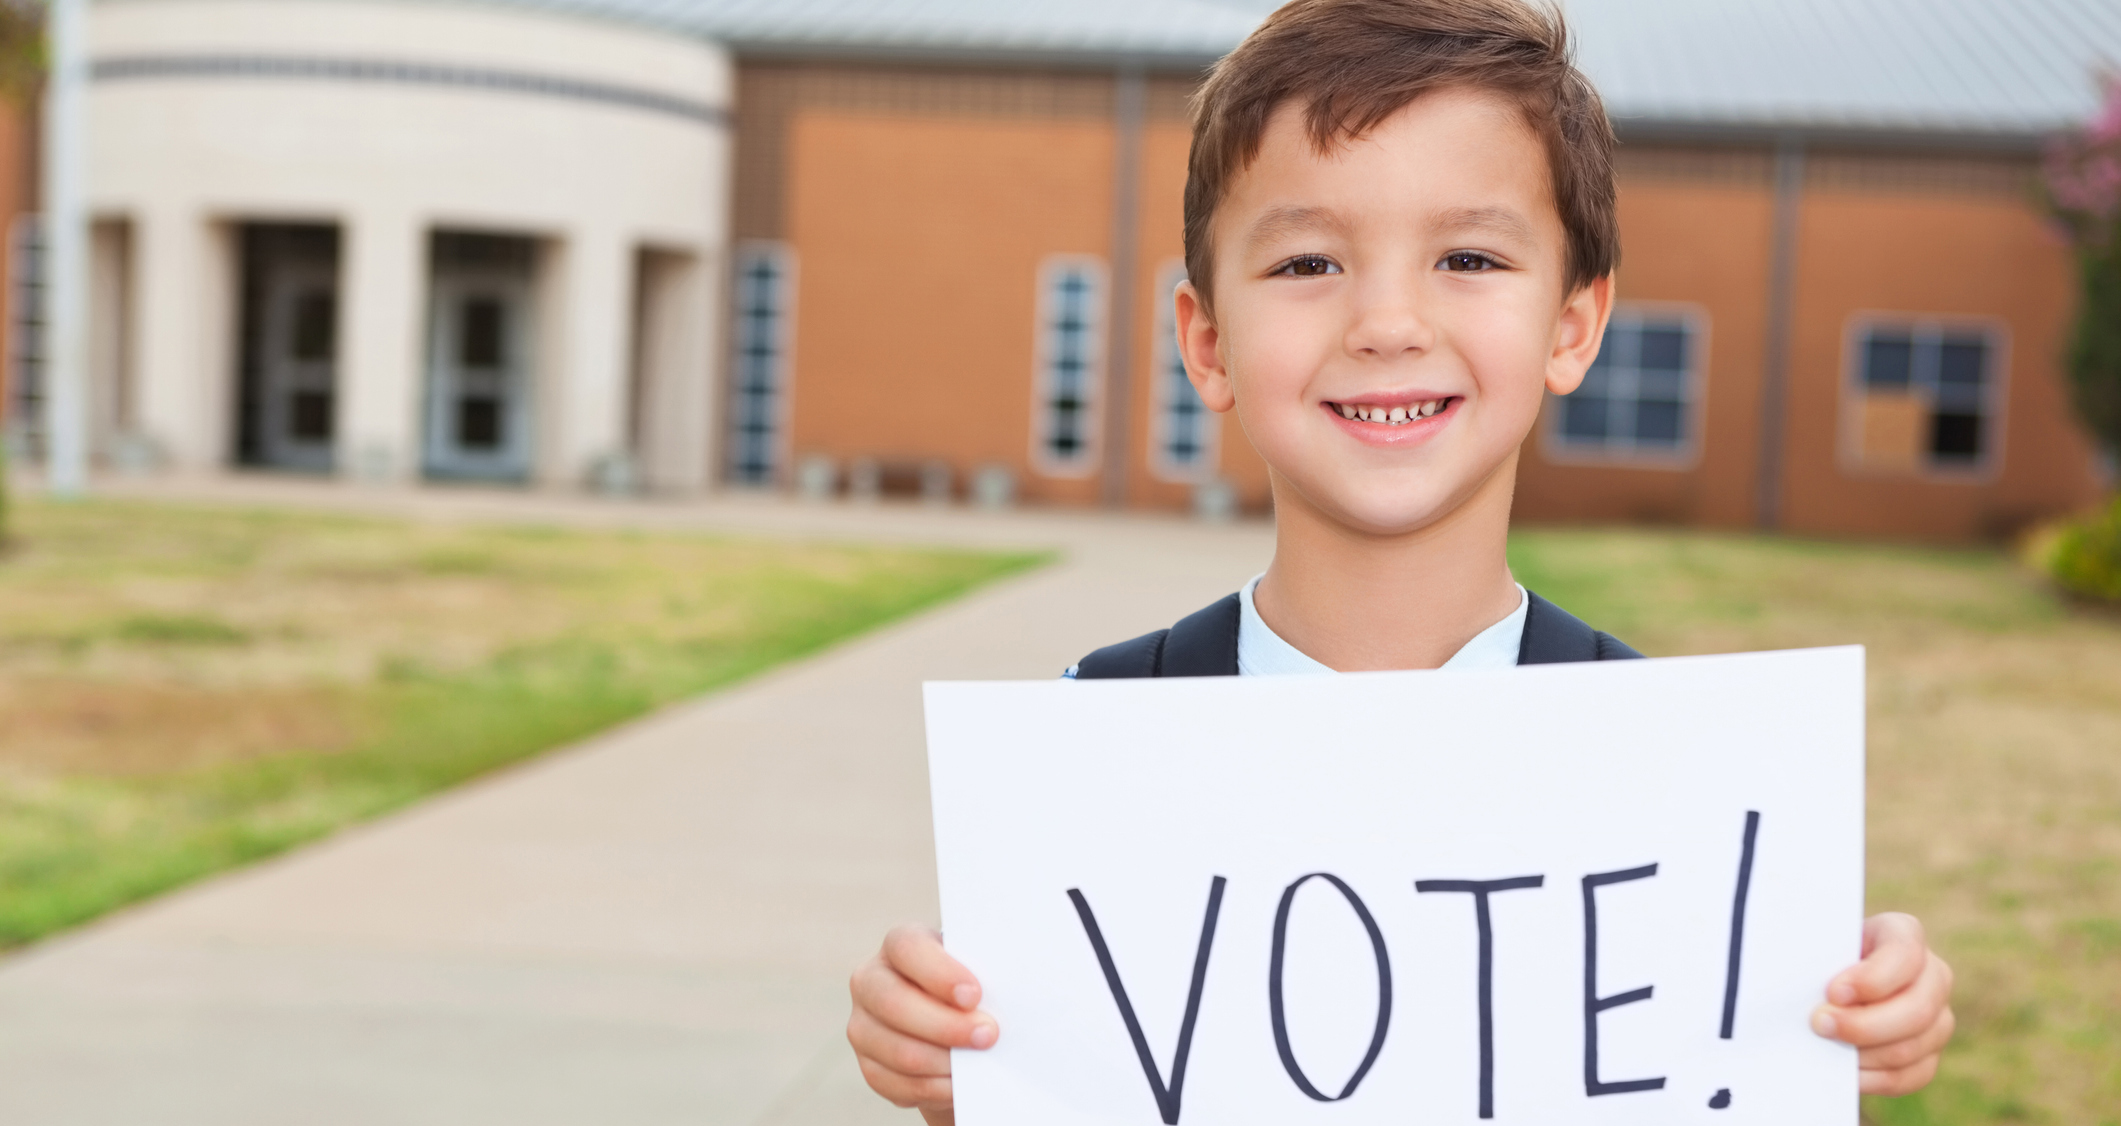 Child with vote sign